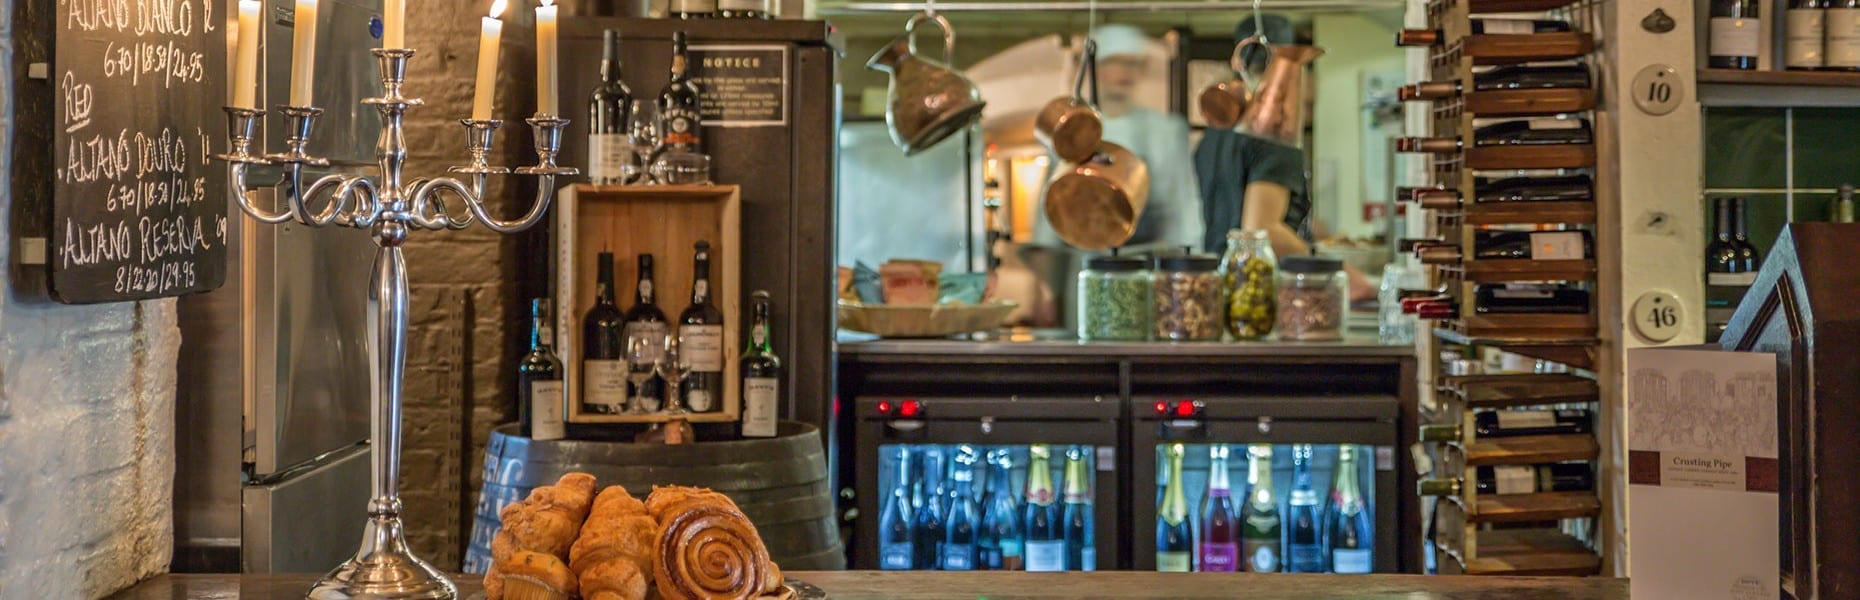 Crusting Pipe bar, Covent Garden